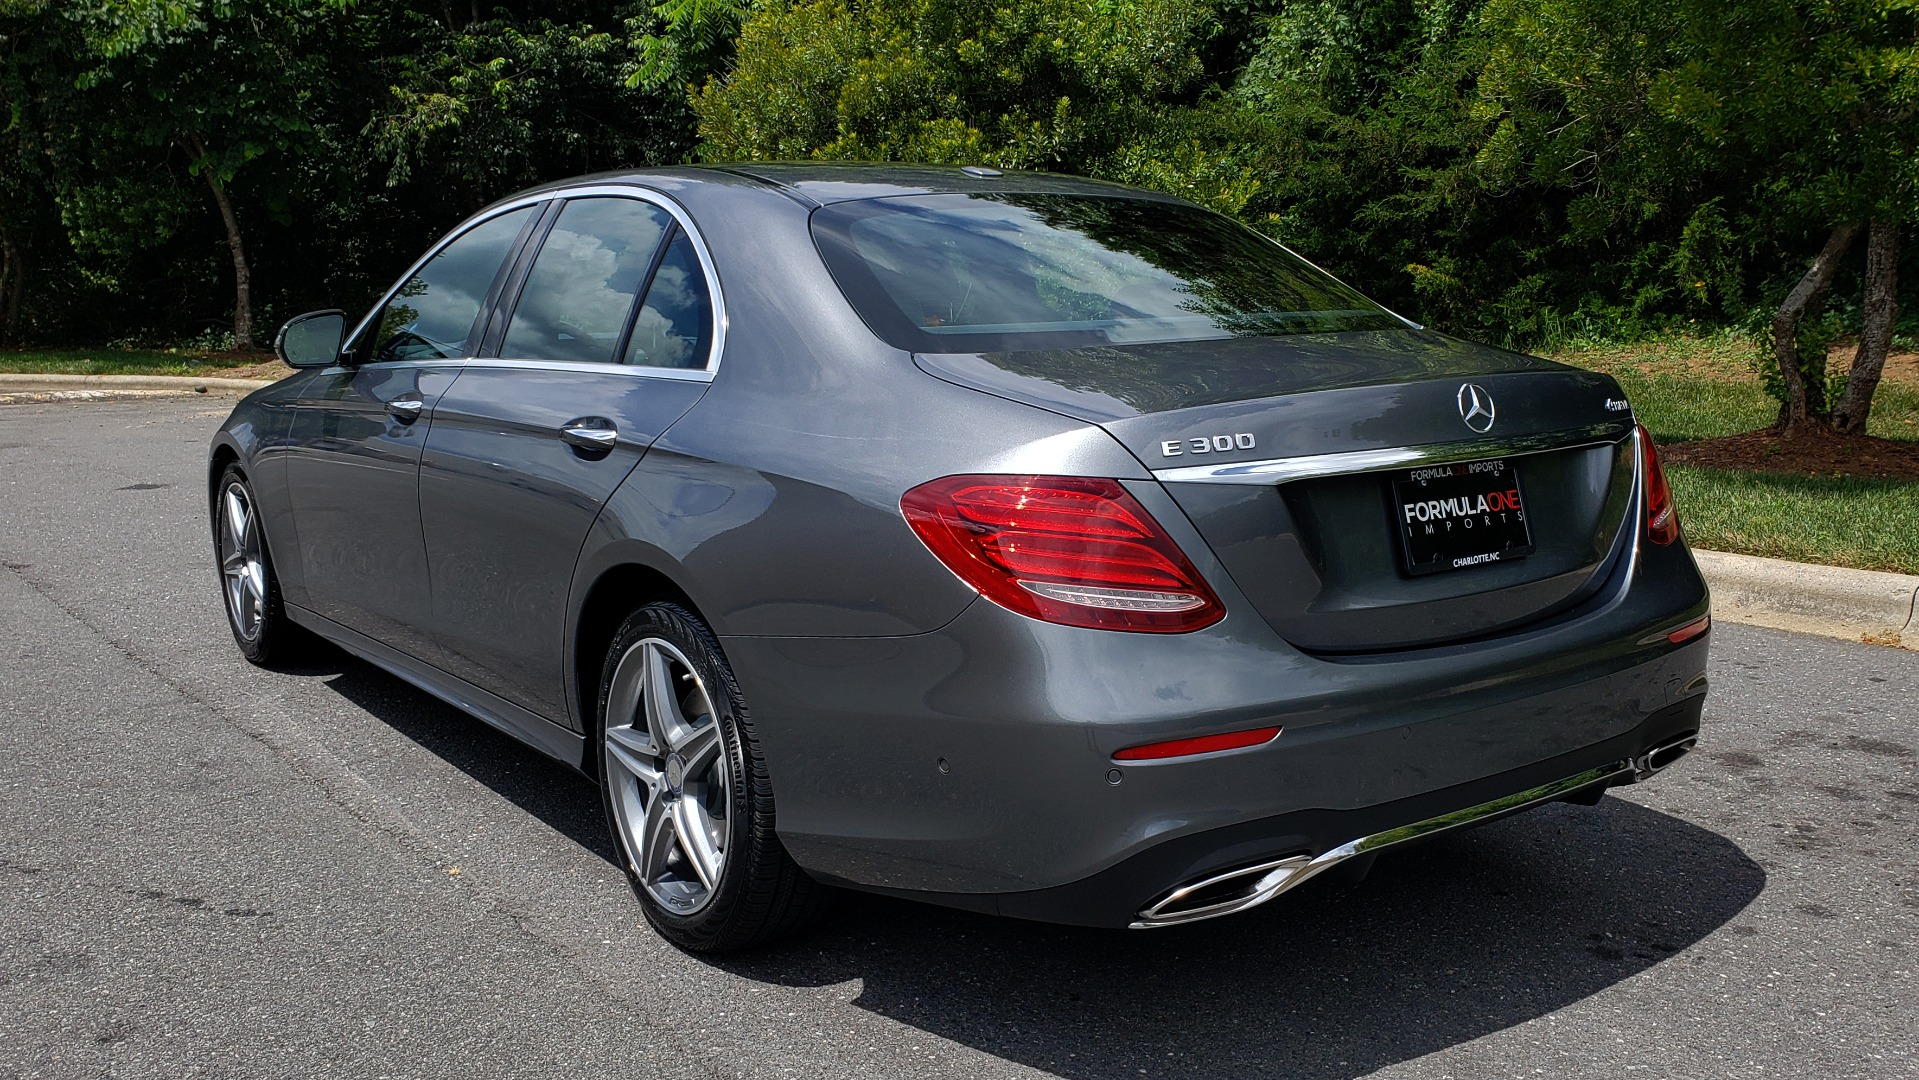 Used 2017 Mercedes-Benz E-CLASS E 300 SPORT 4MATIC / PREM PKG / NAV / SUNROOF / BURMESTER SND / REARVIEW for sale Sold at Formula Imports in Charlotte NC 28227 3